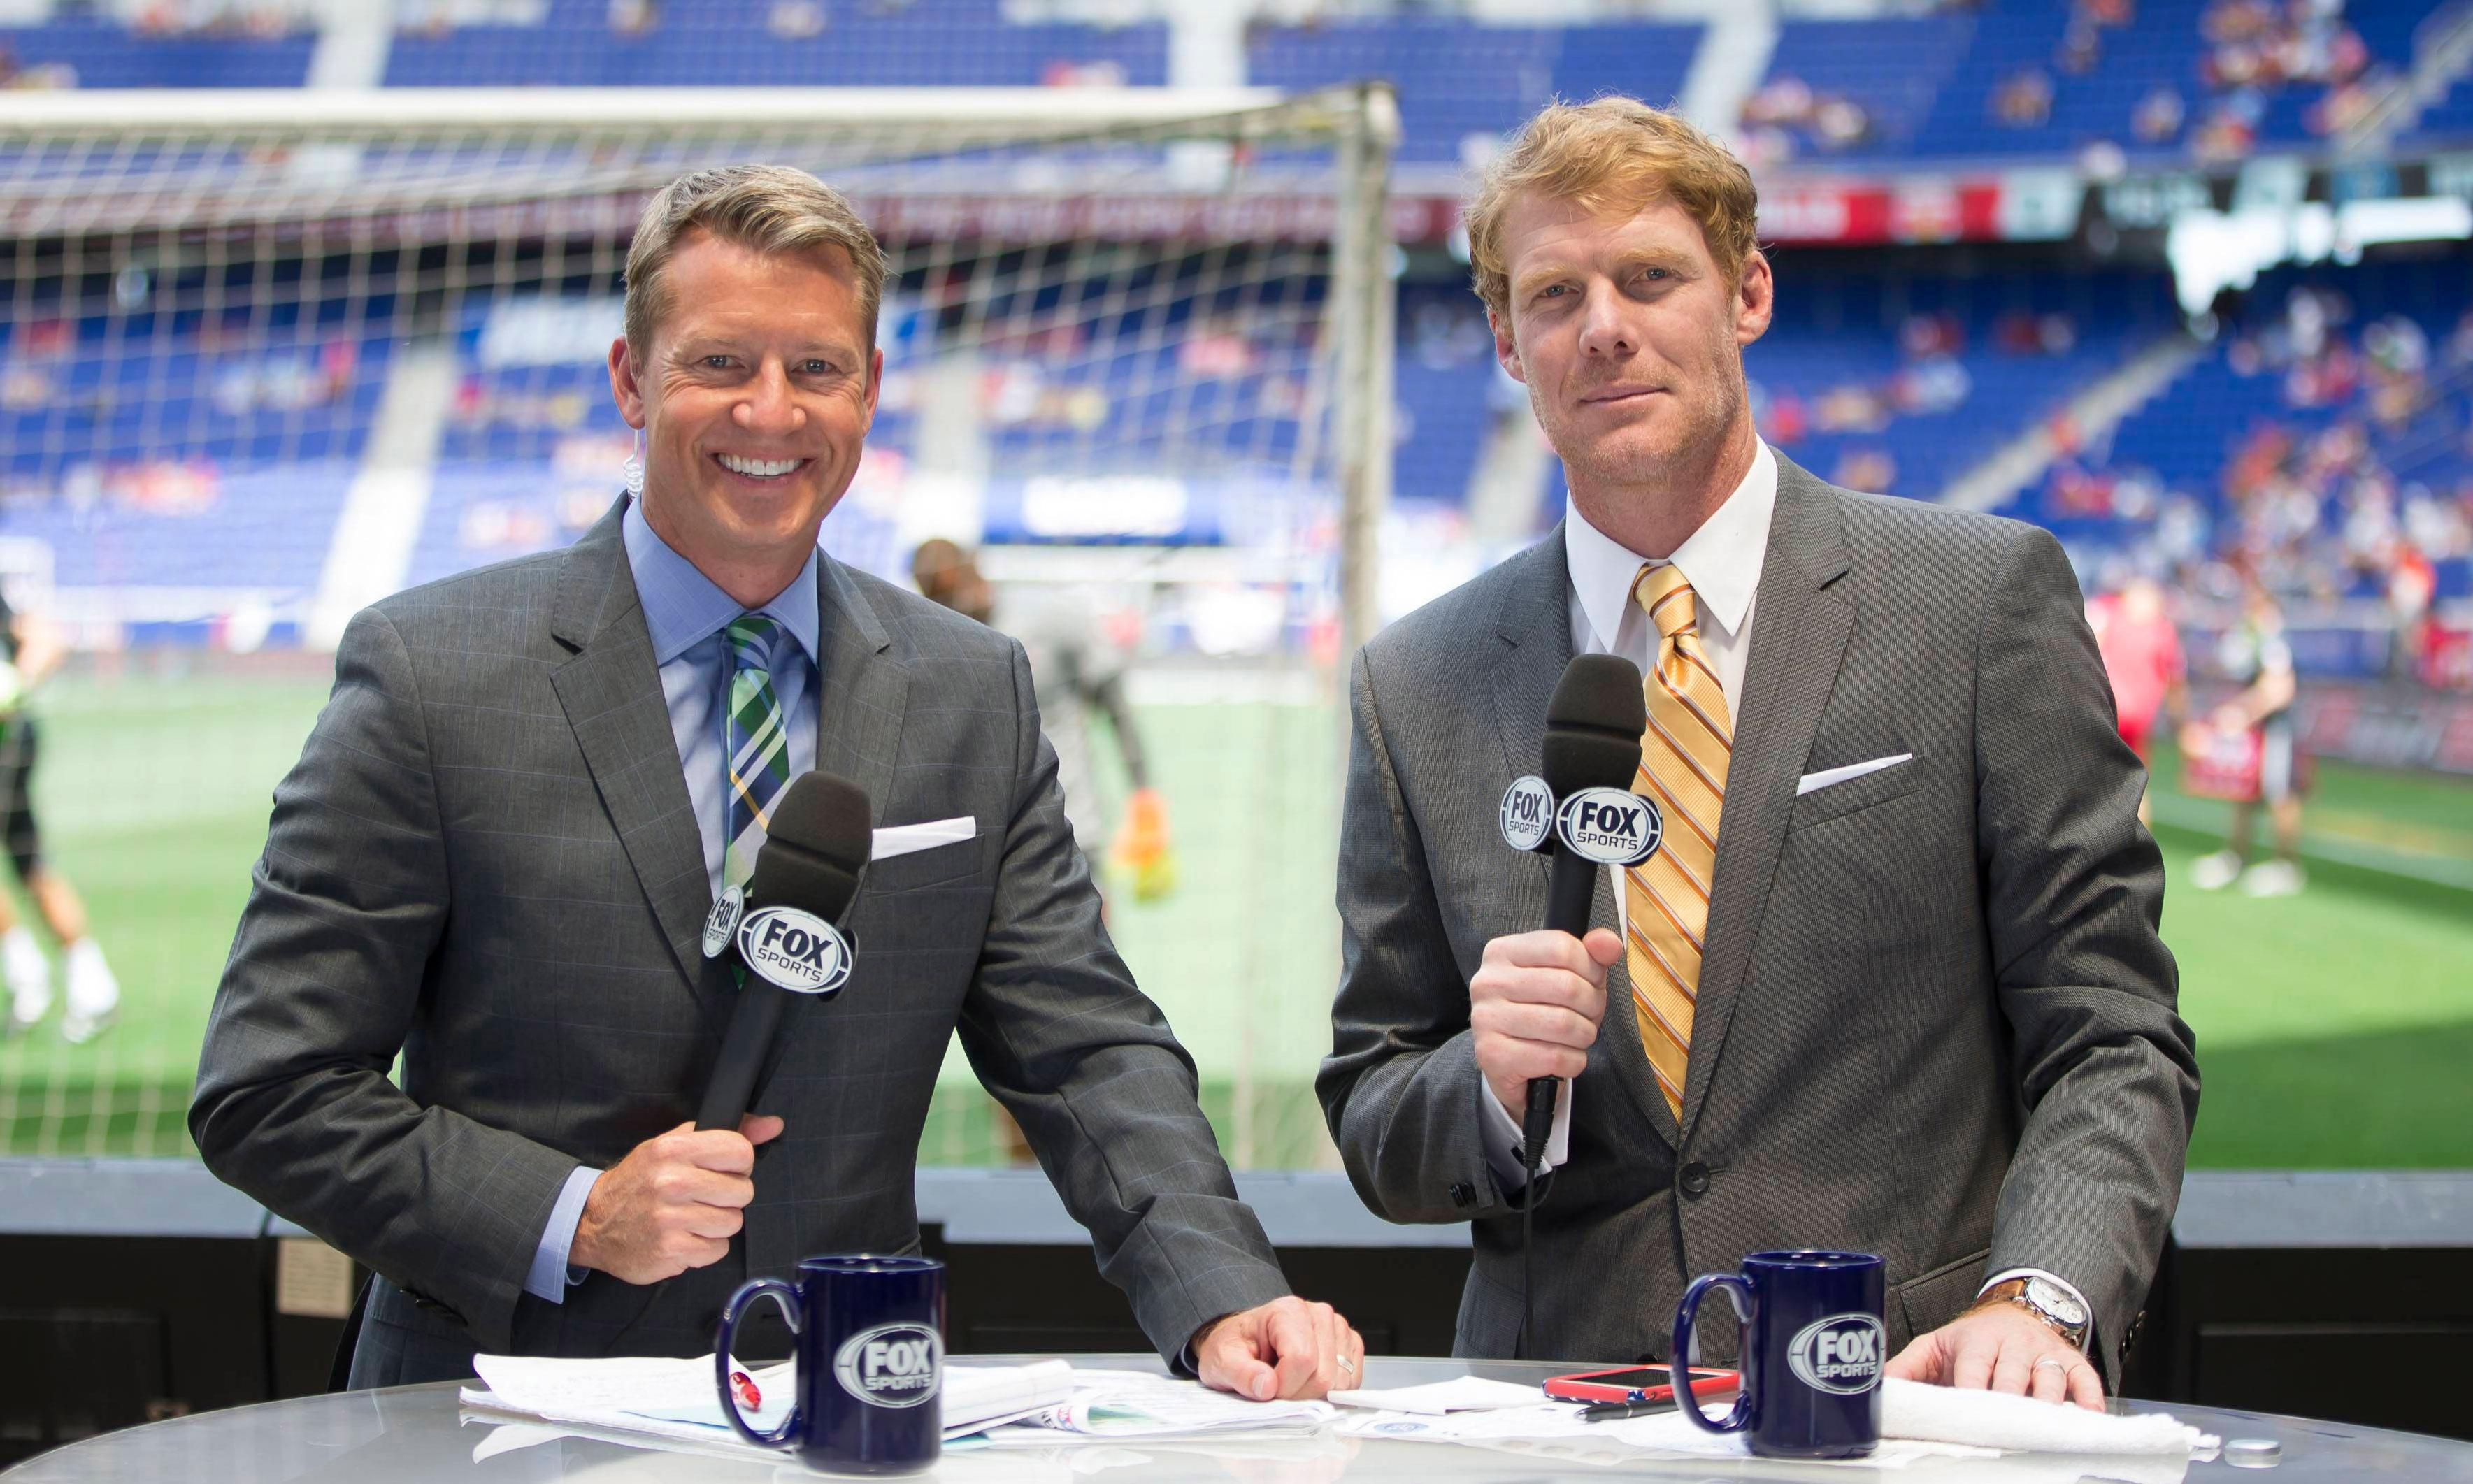 The Stone-Lalas dumbumvirate sums up Fox's botched World Cup coverage